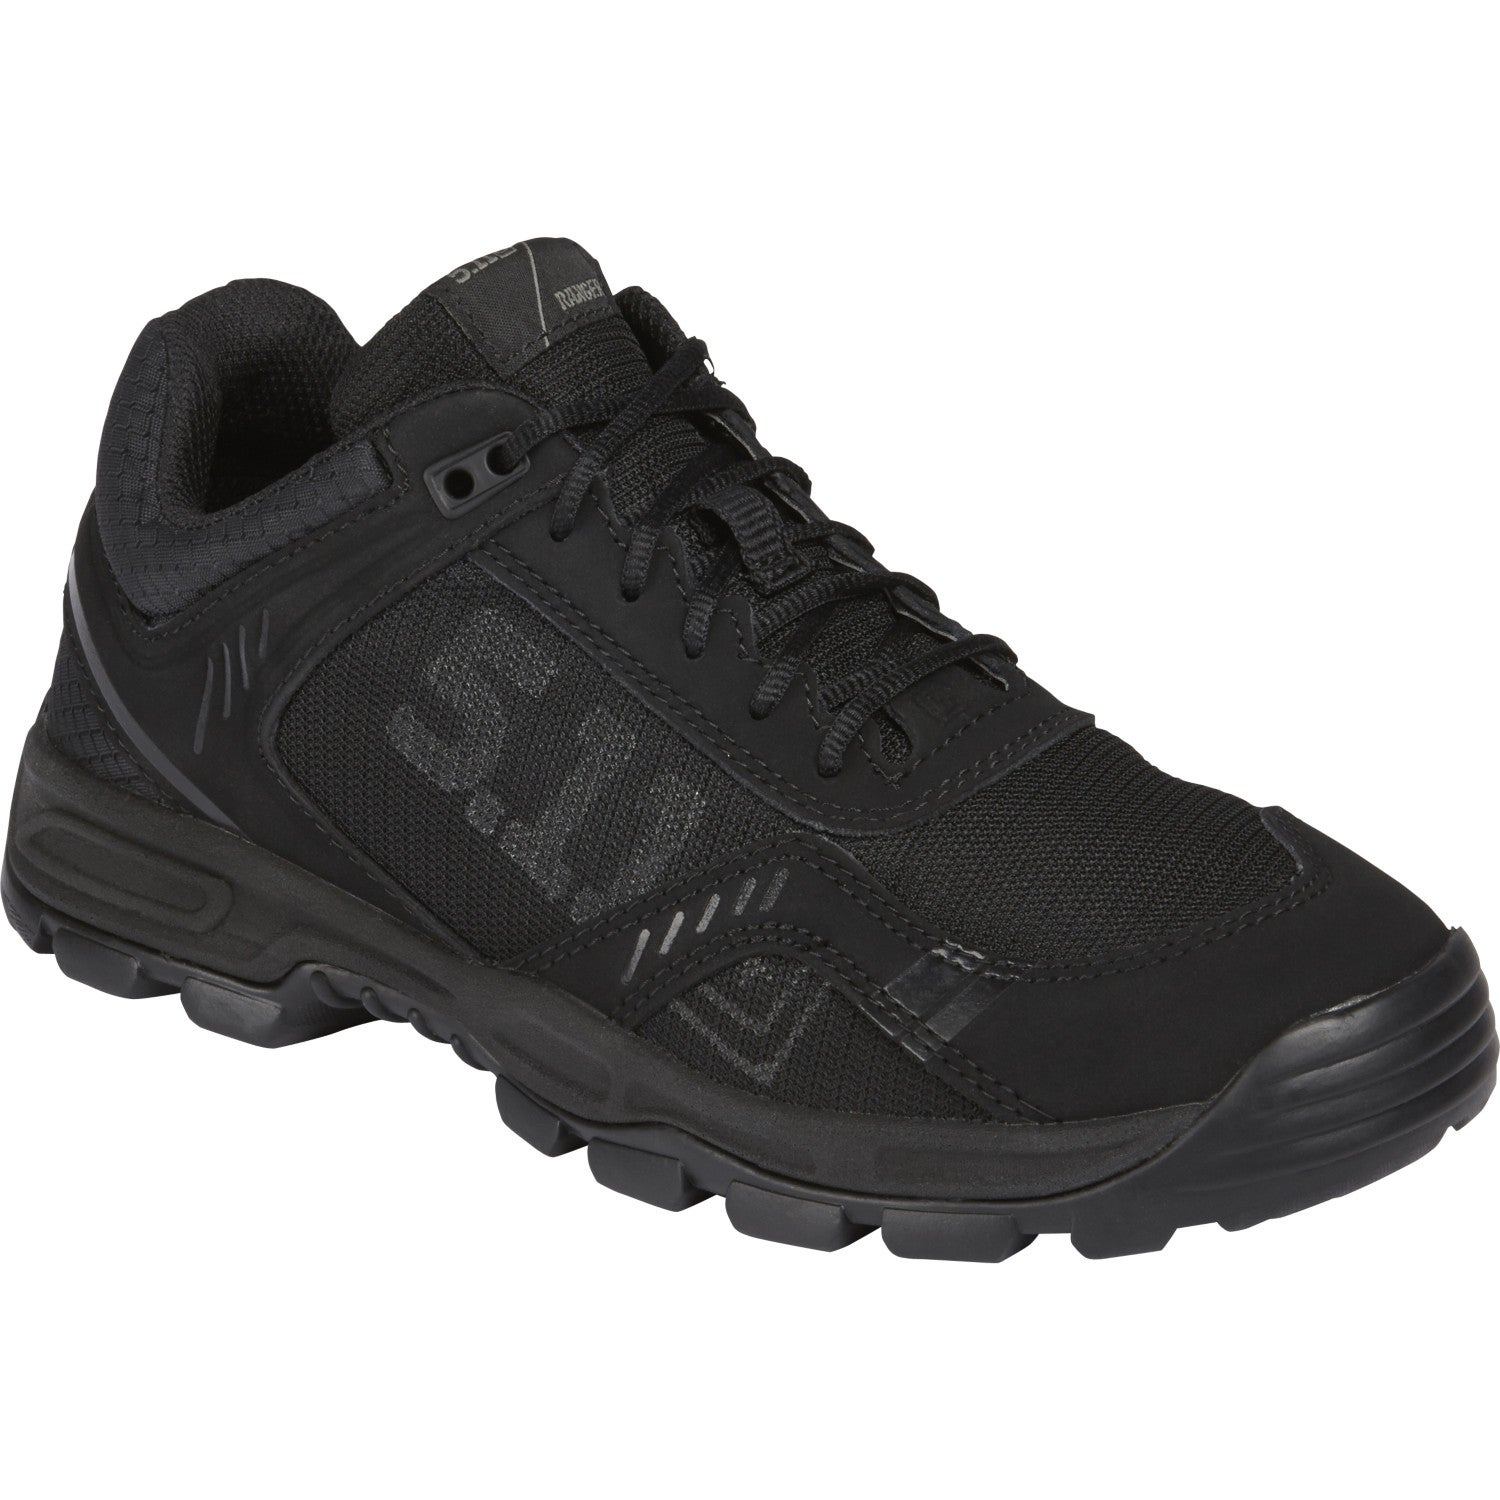 5.11 Tactical Ranger Unisex Boots Military - Black All Sizes